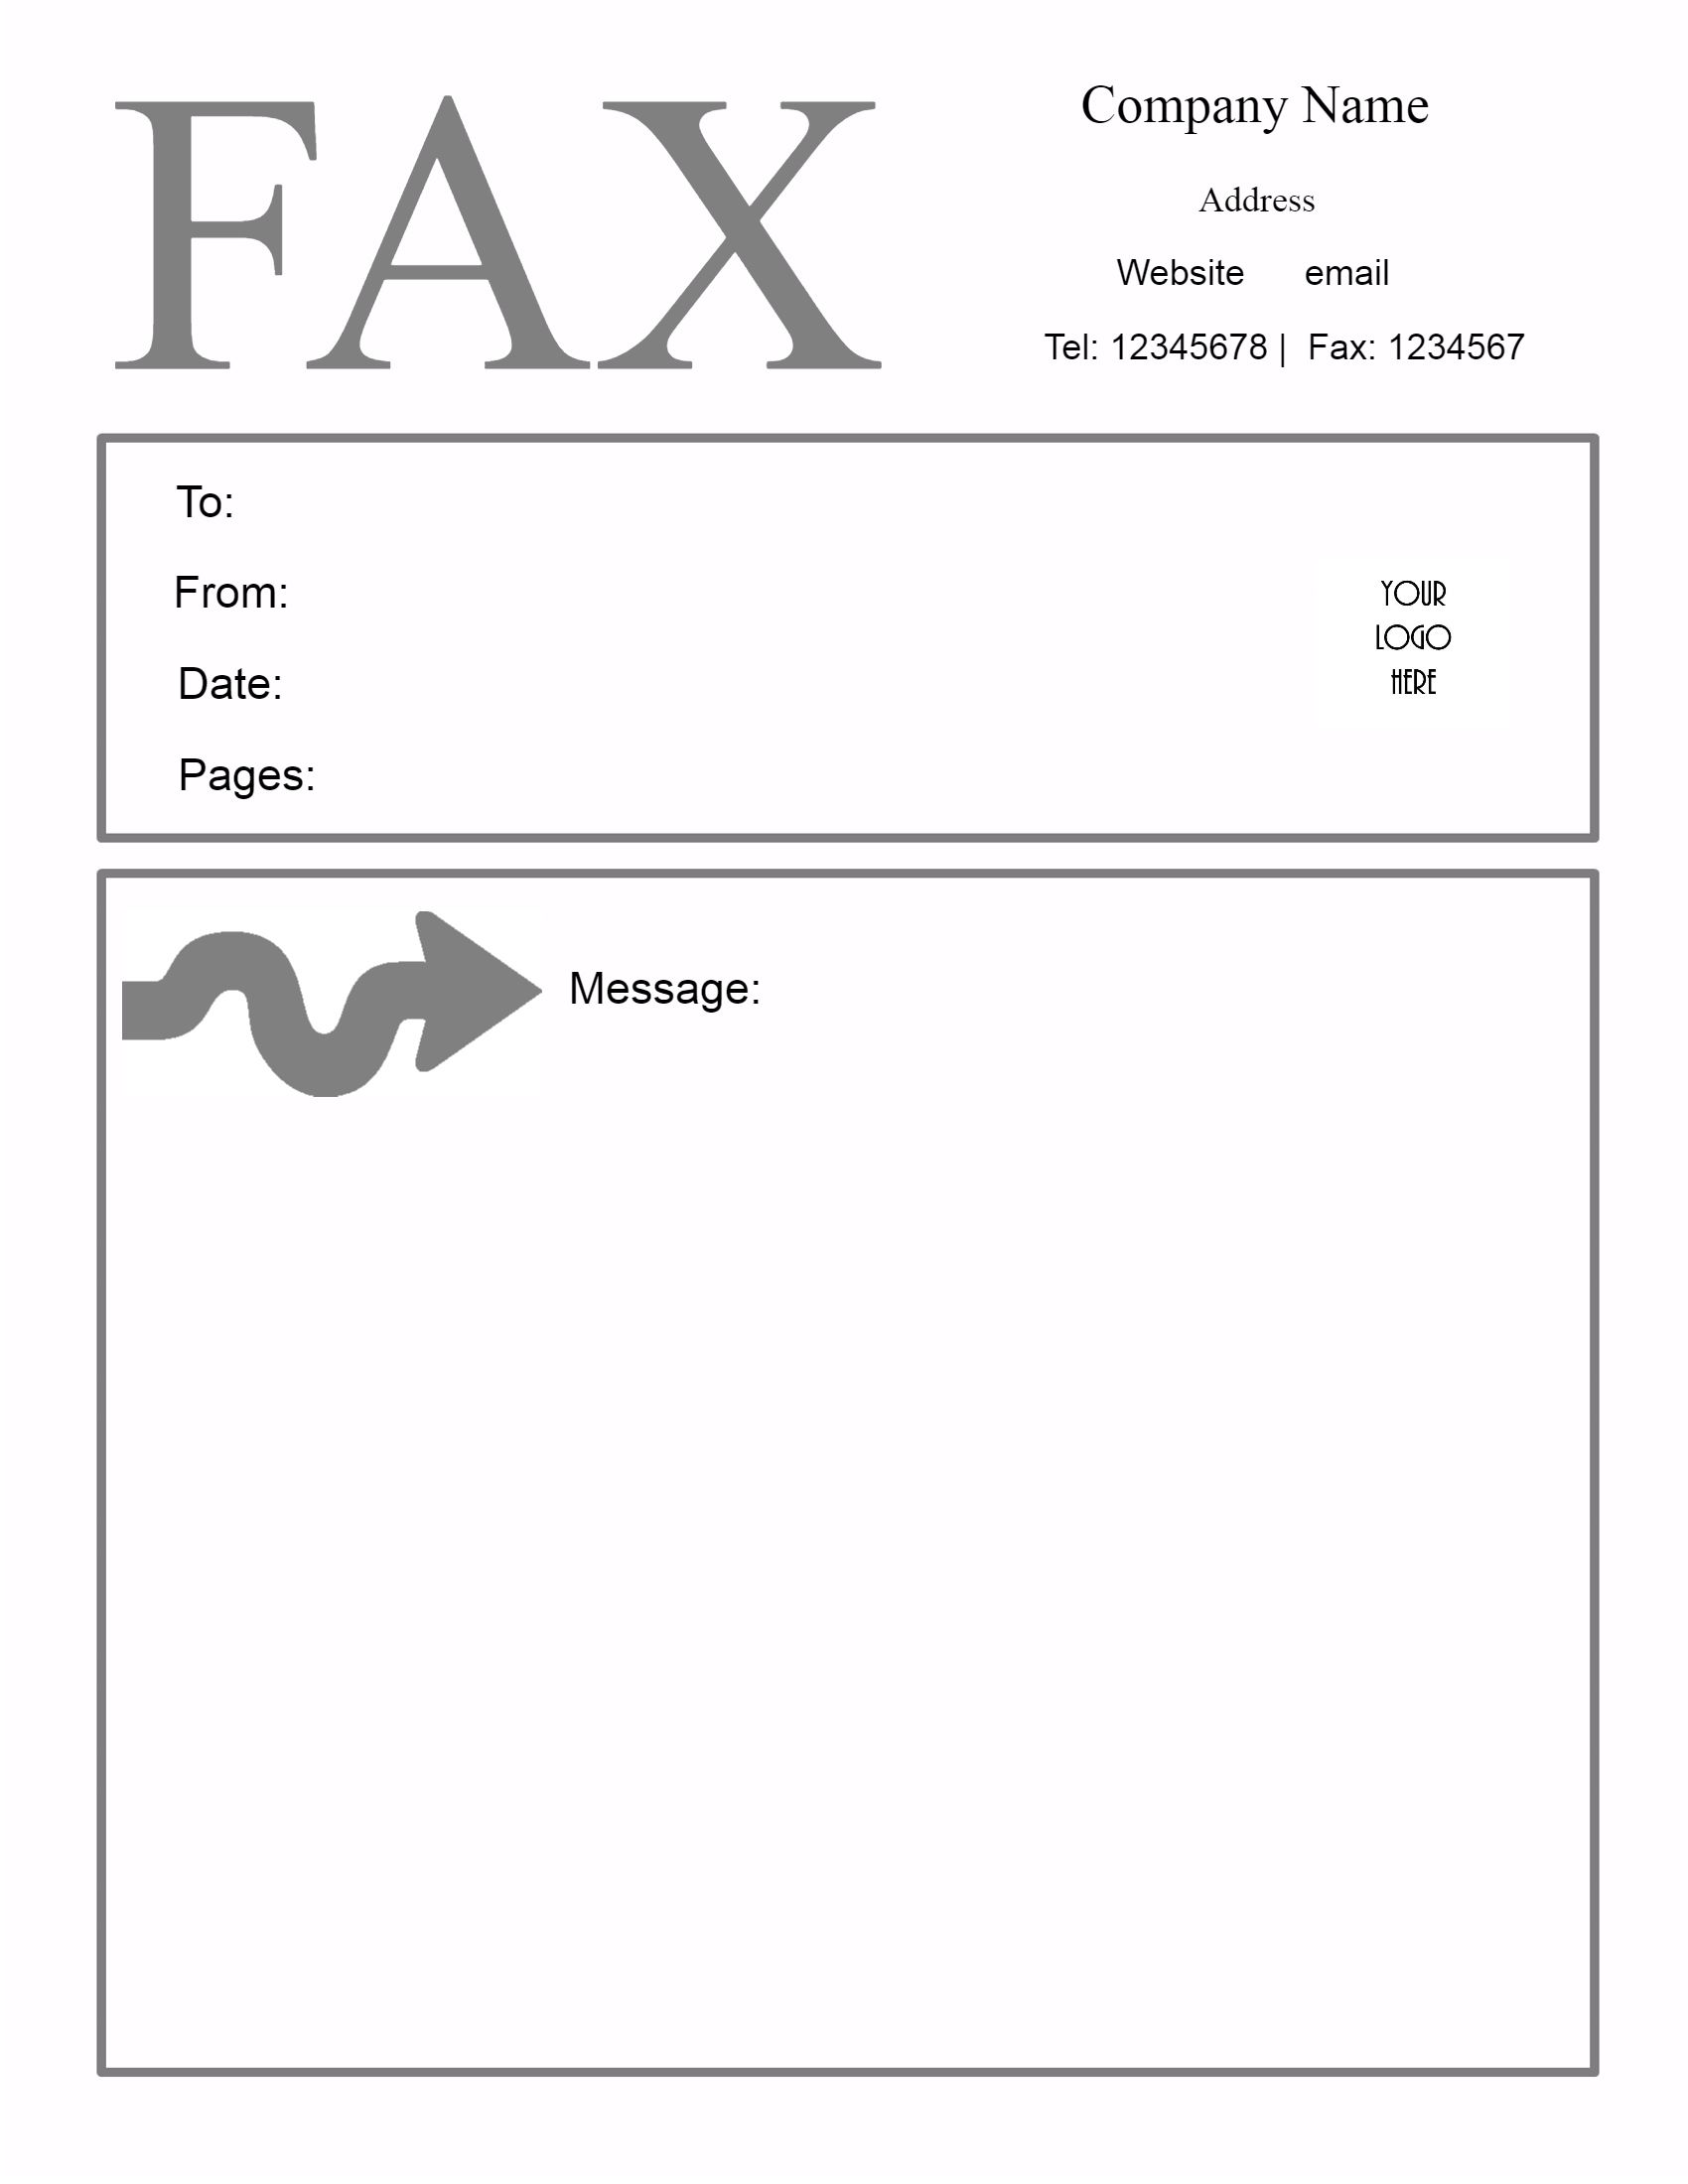 Sample Fax Cover Sheet. Free Fax Templates  Fax Cover Sheet Download